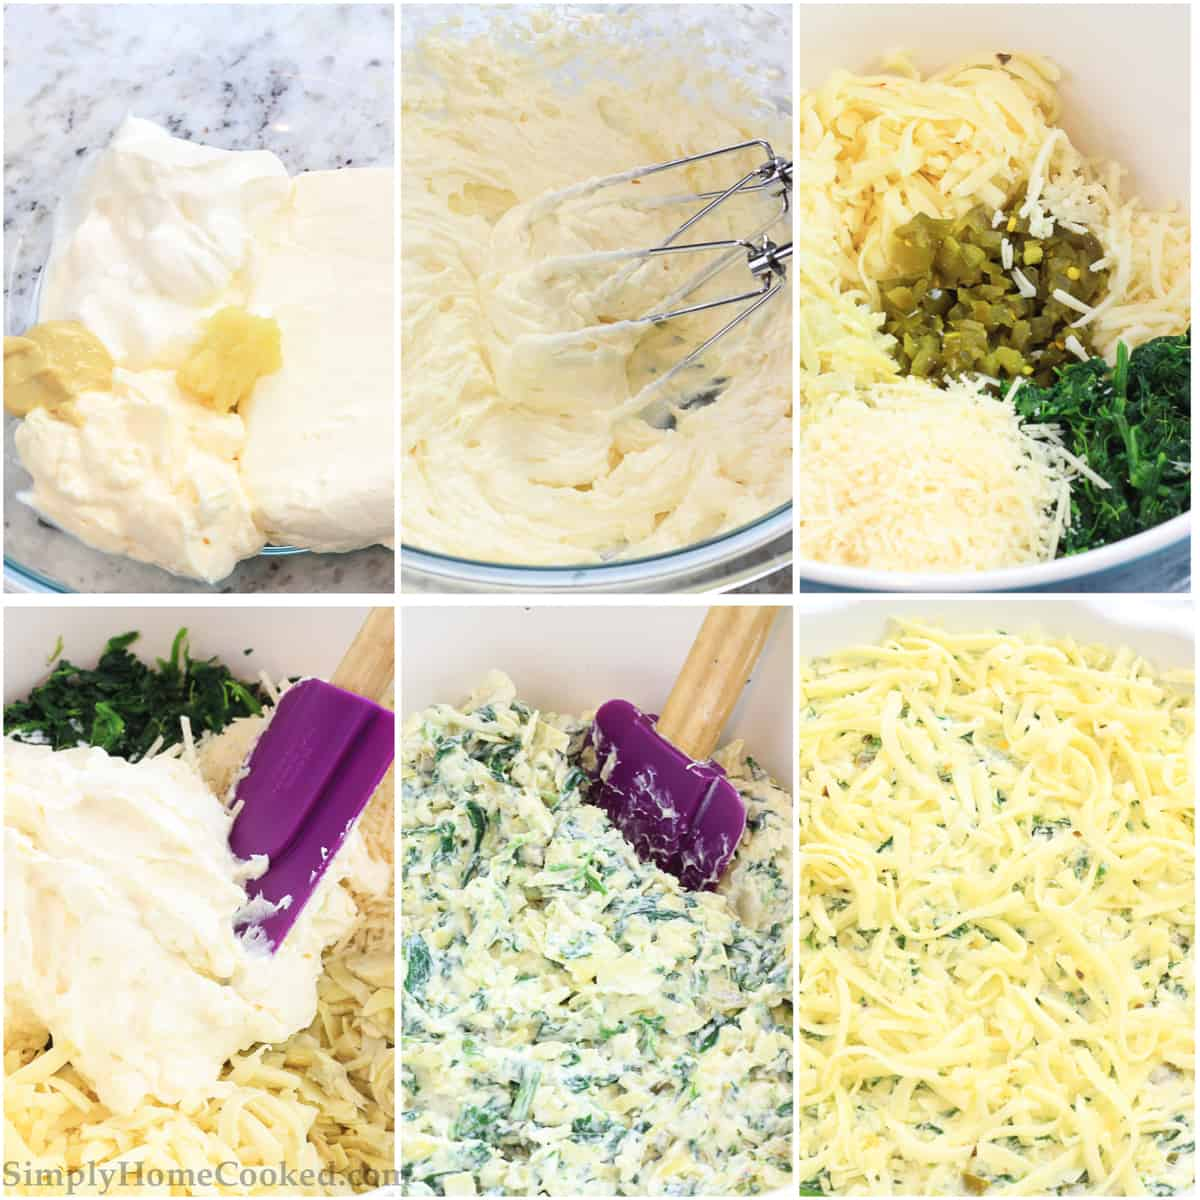 Six tiles showing the steps to make Jalapeno Artichoke dip: mayonnaise, sour cream, cream cheese, dijon mustard, and garlic in a bowl, mixed with a hand mixer, then with jalapenos, artichokes, and spinach added, mixed with a purple spatula, blended with cheeses, and then topped with more cheese.